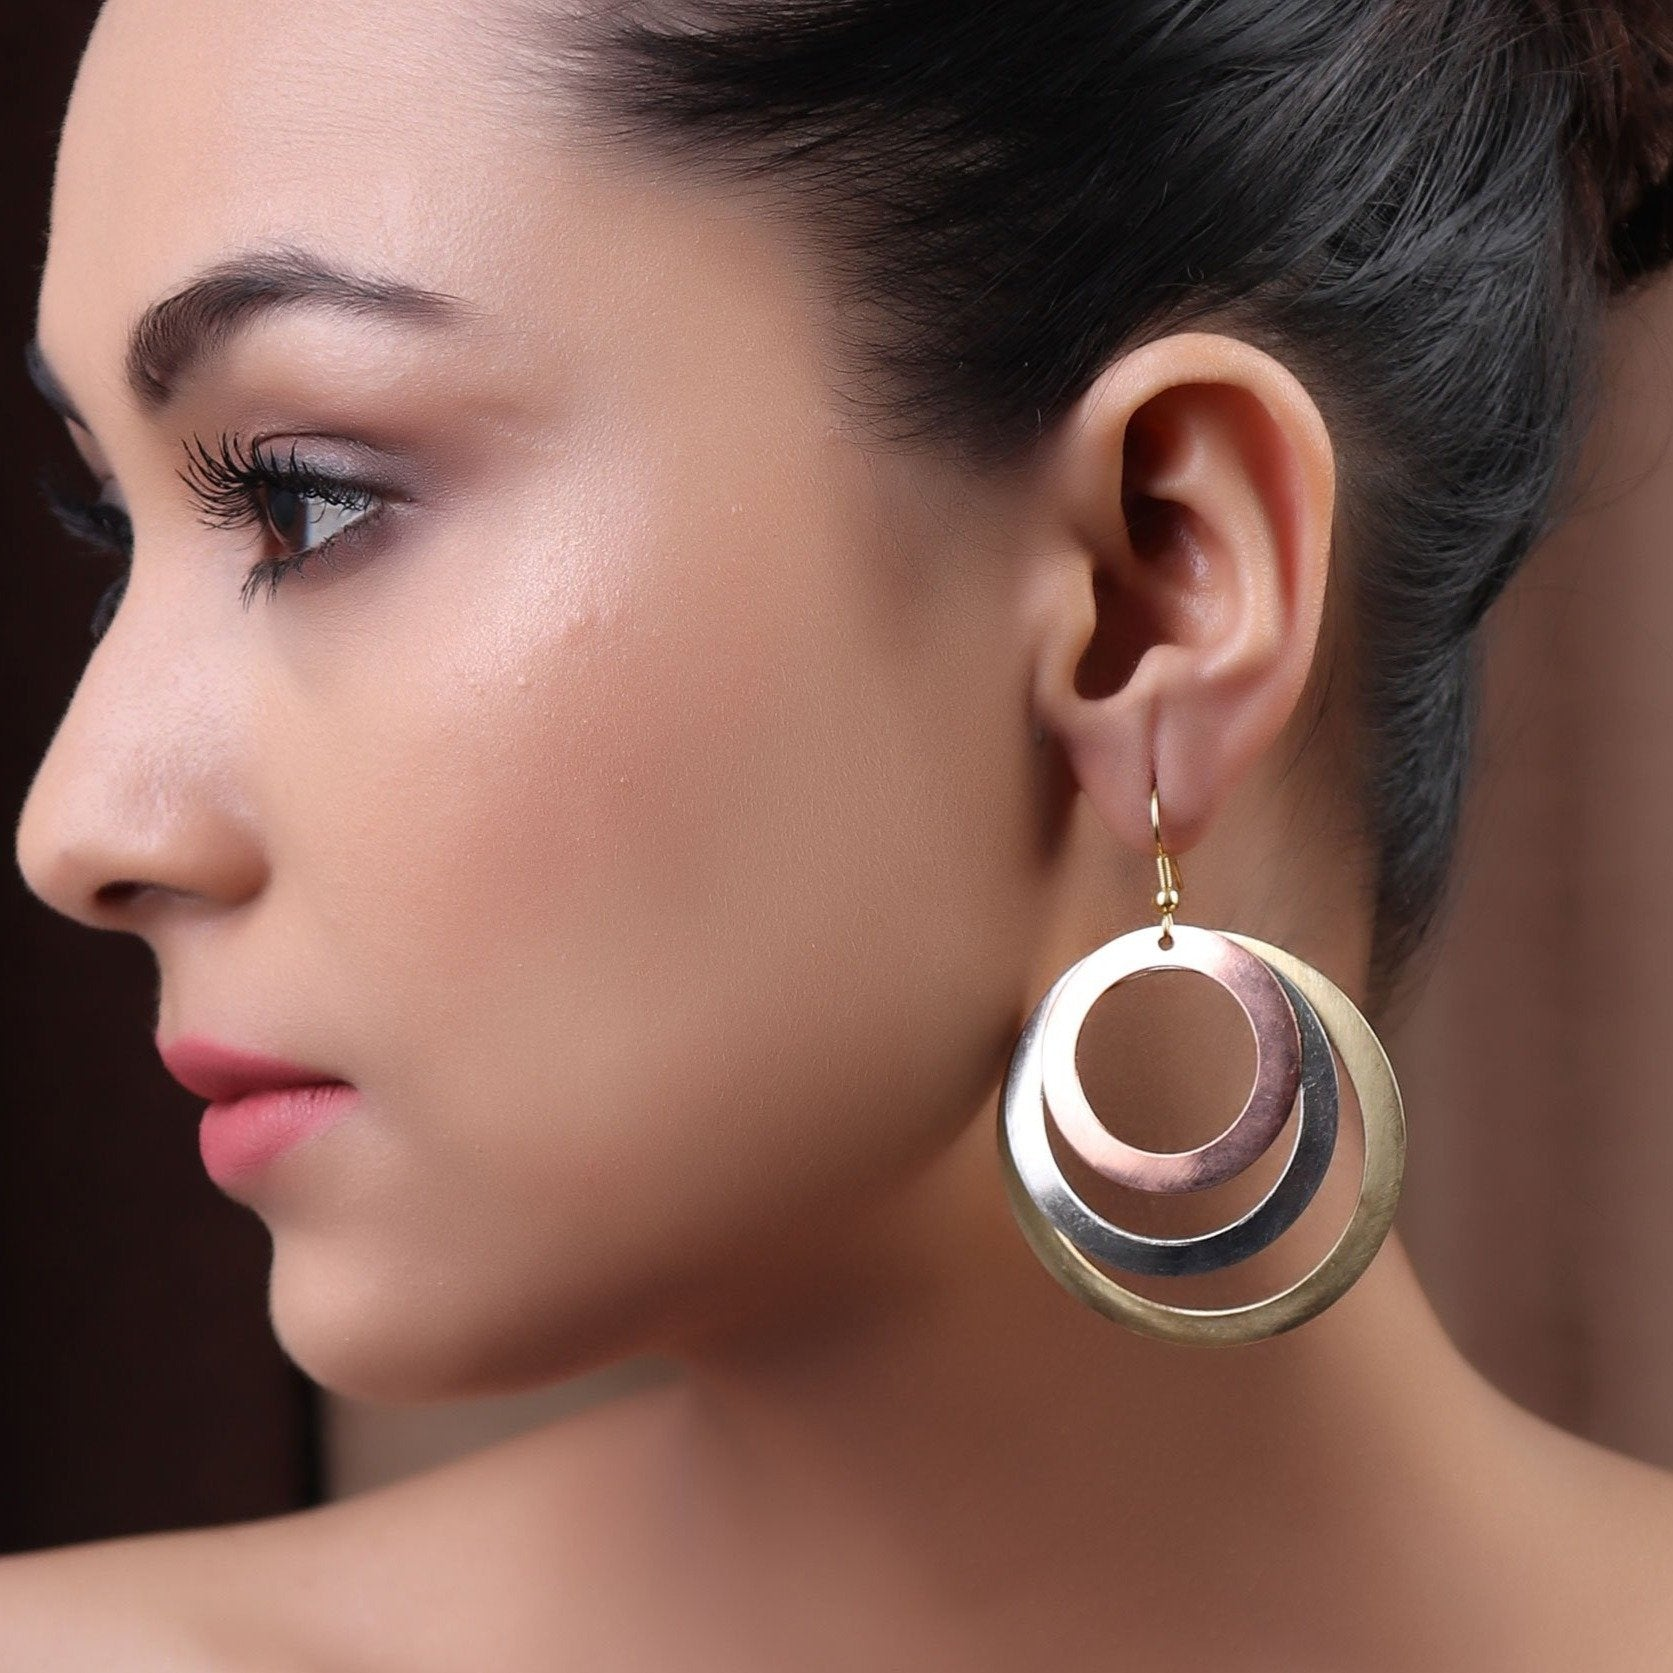 Earrings,The Circle of Trust Earring - Cippele Multi Store